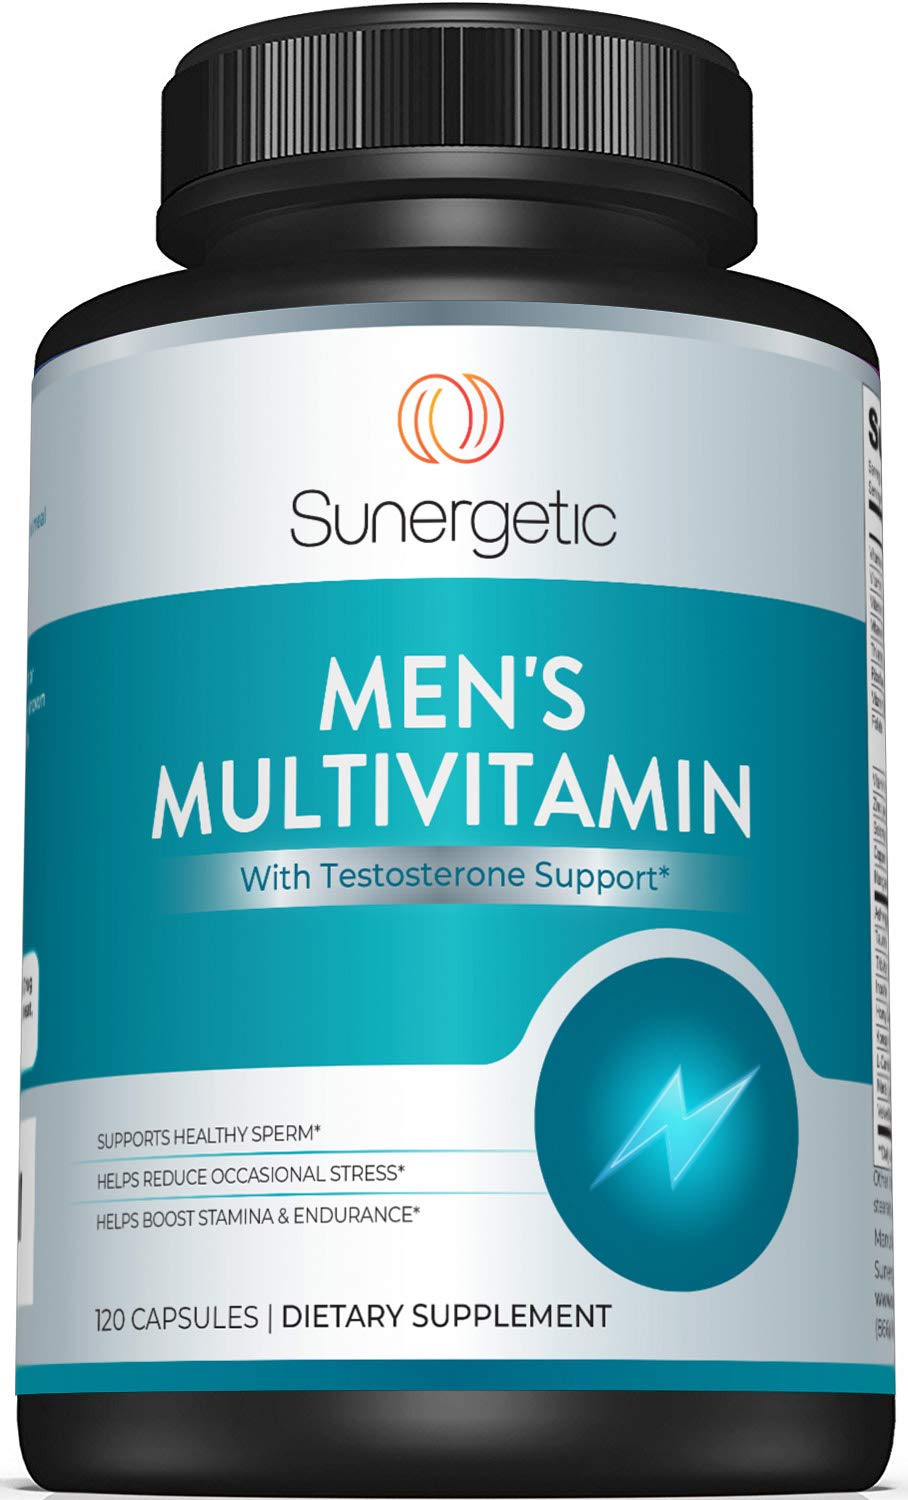 Premium Men's Support Supplement – Powerful Men's Multivitamin– Supports Energy, Stamina, Endurance & Stress Management – with Zinc, Ashwagandha, Maca, L-Carnitine & Vitamins – 120 Capsules